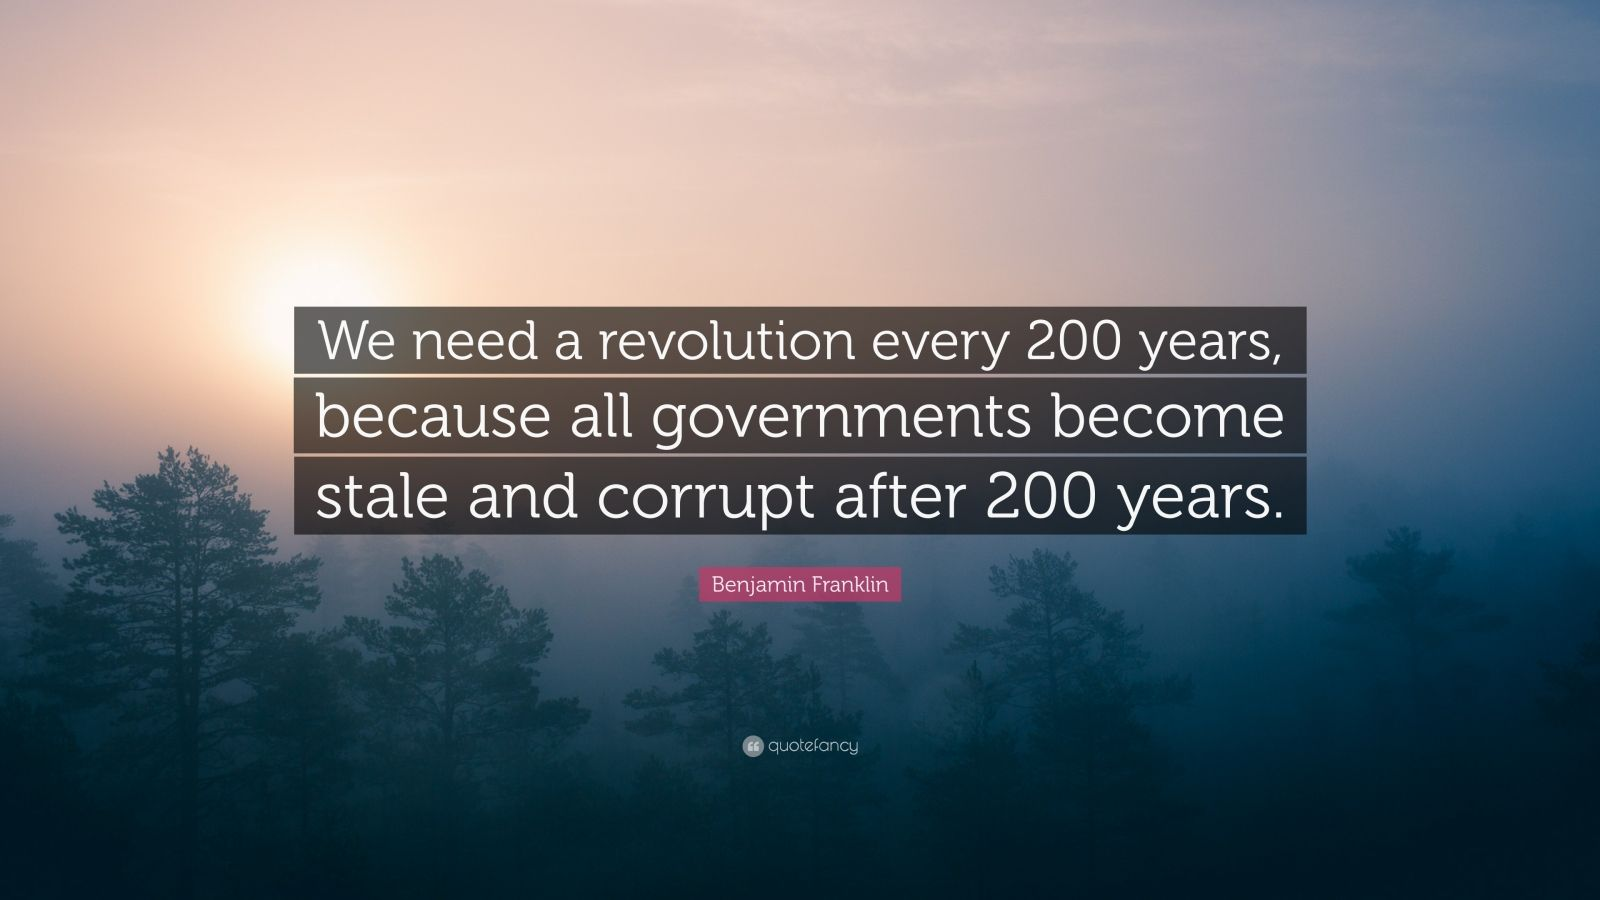 """Benjamin Franklin Quote: """"We need a revolution every 200 years, because all governments become stale and corrupt after 200 years."""""""